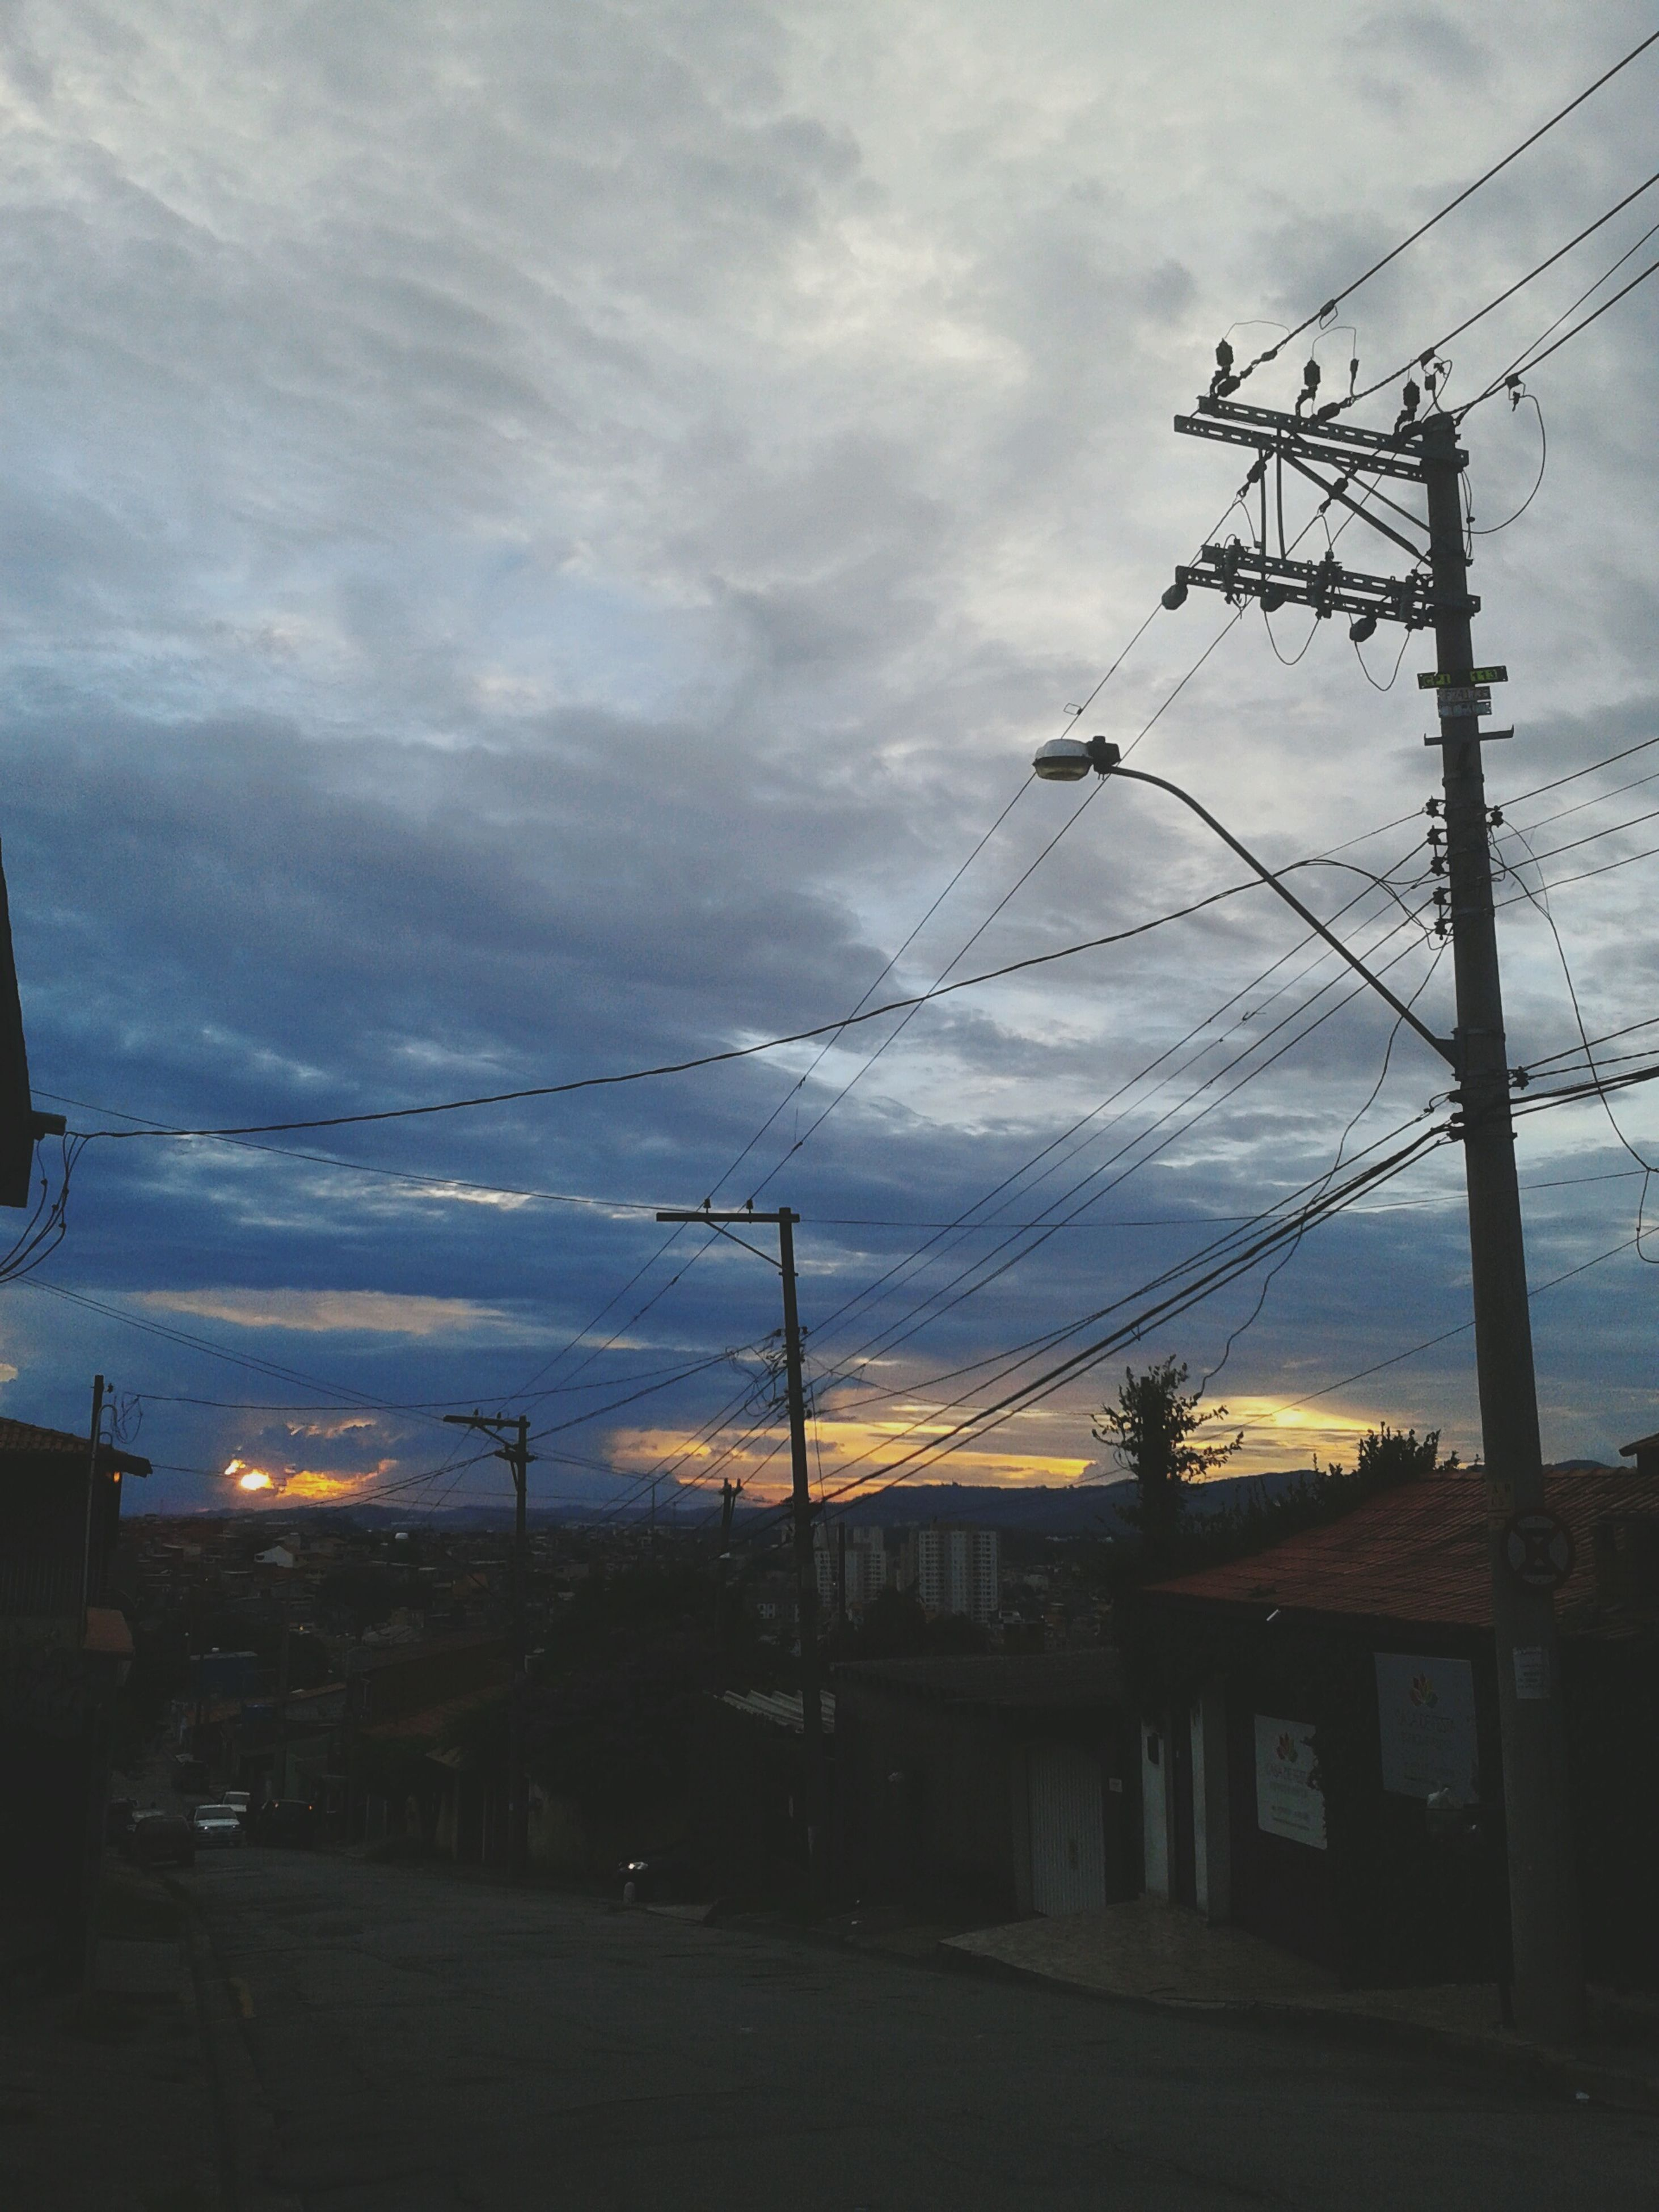 power line, electricity pylon, sky, cable, power supply, electricity, connection, cloud - sky, built structure, architecture, fuel and power generation, building exterior, cloudy, sunset, power cable, cloud, low angle view, transportation, silhouette, technology